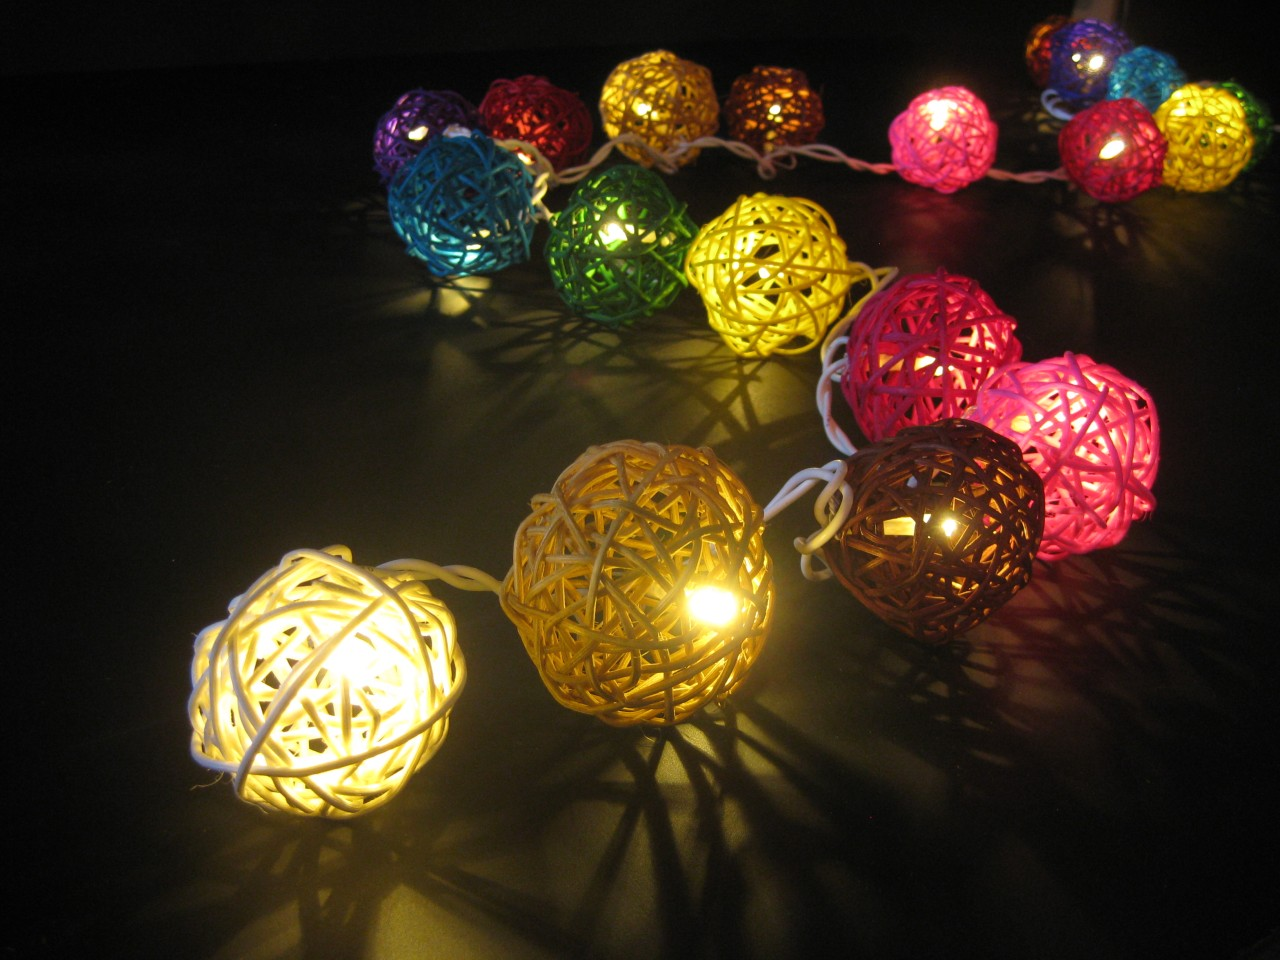 MULTICOLOUR WICKER RATTAN BALL LED STRING FAIRY LIGHTS Home Party Night Light eBay